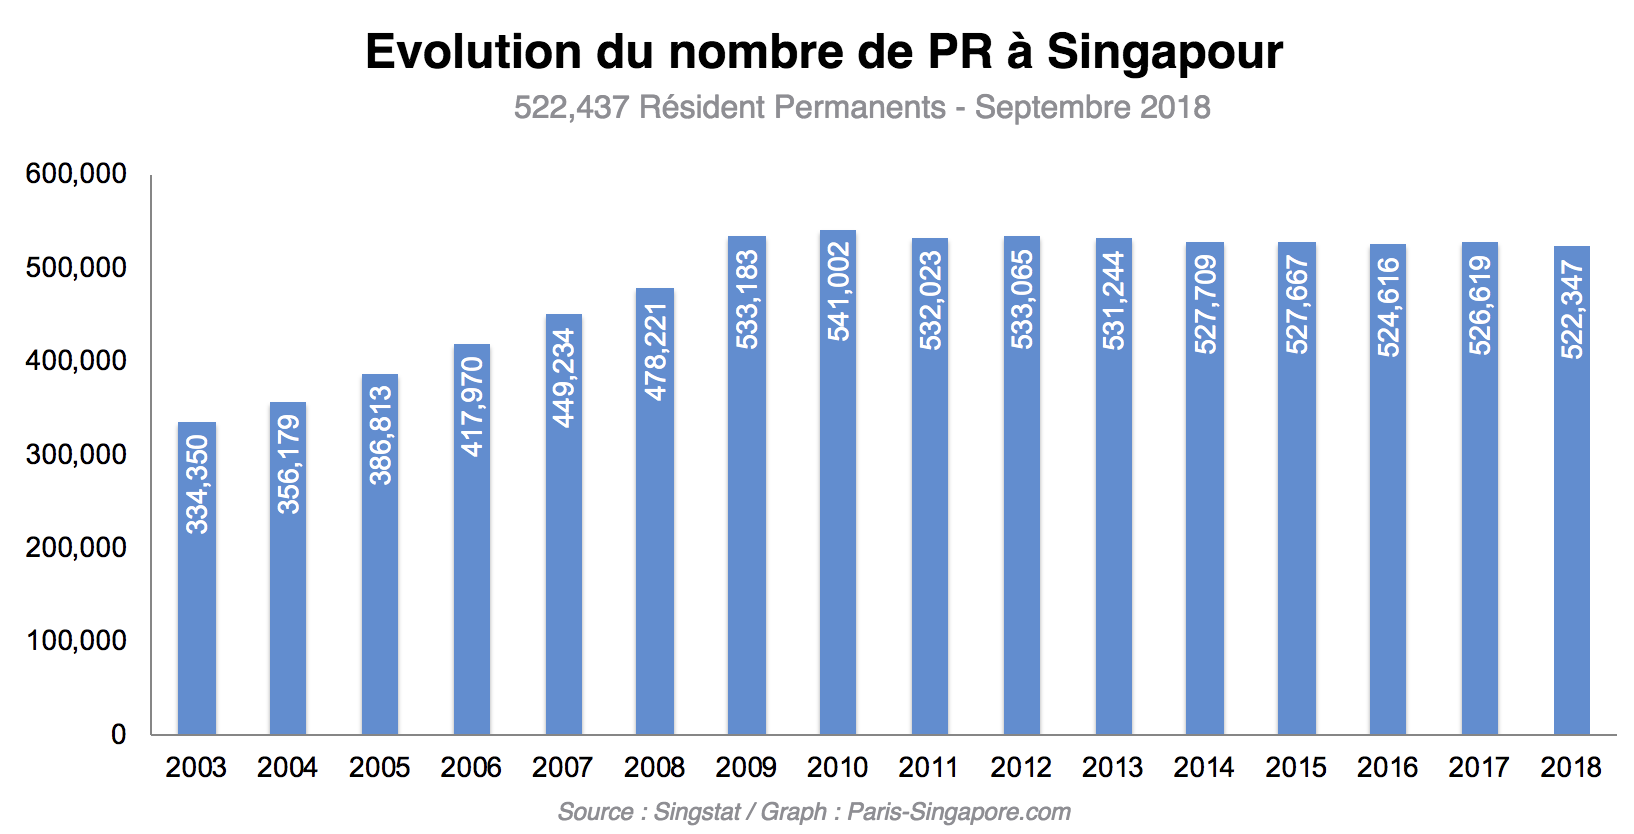 Evolution du nombre de Résidents Permanents (PR) à Singapour (2003-2018)